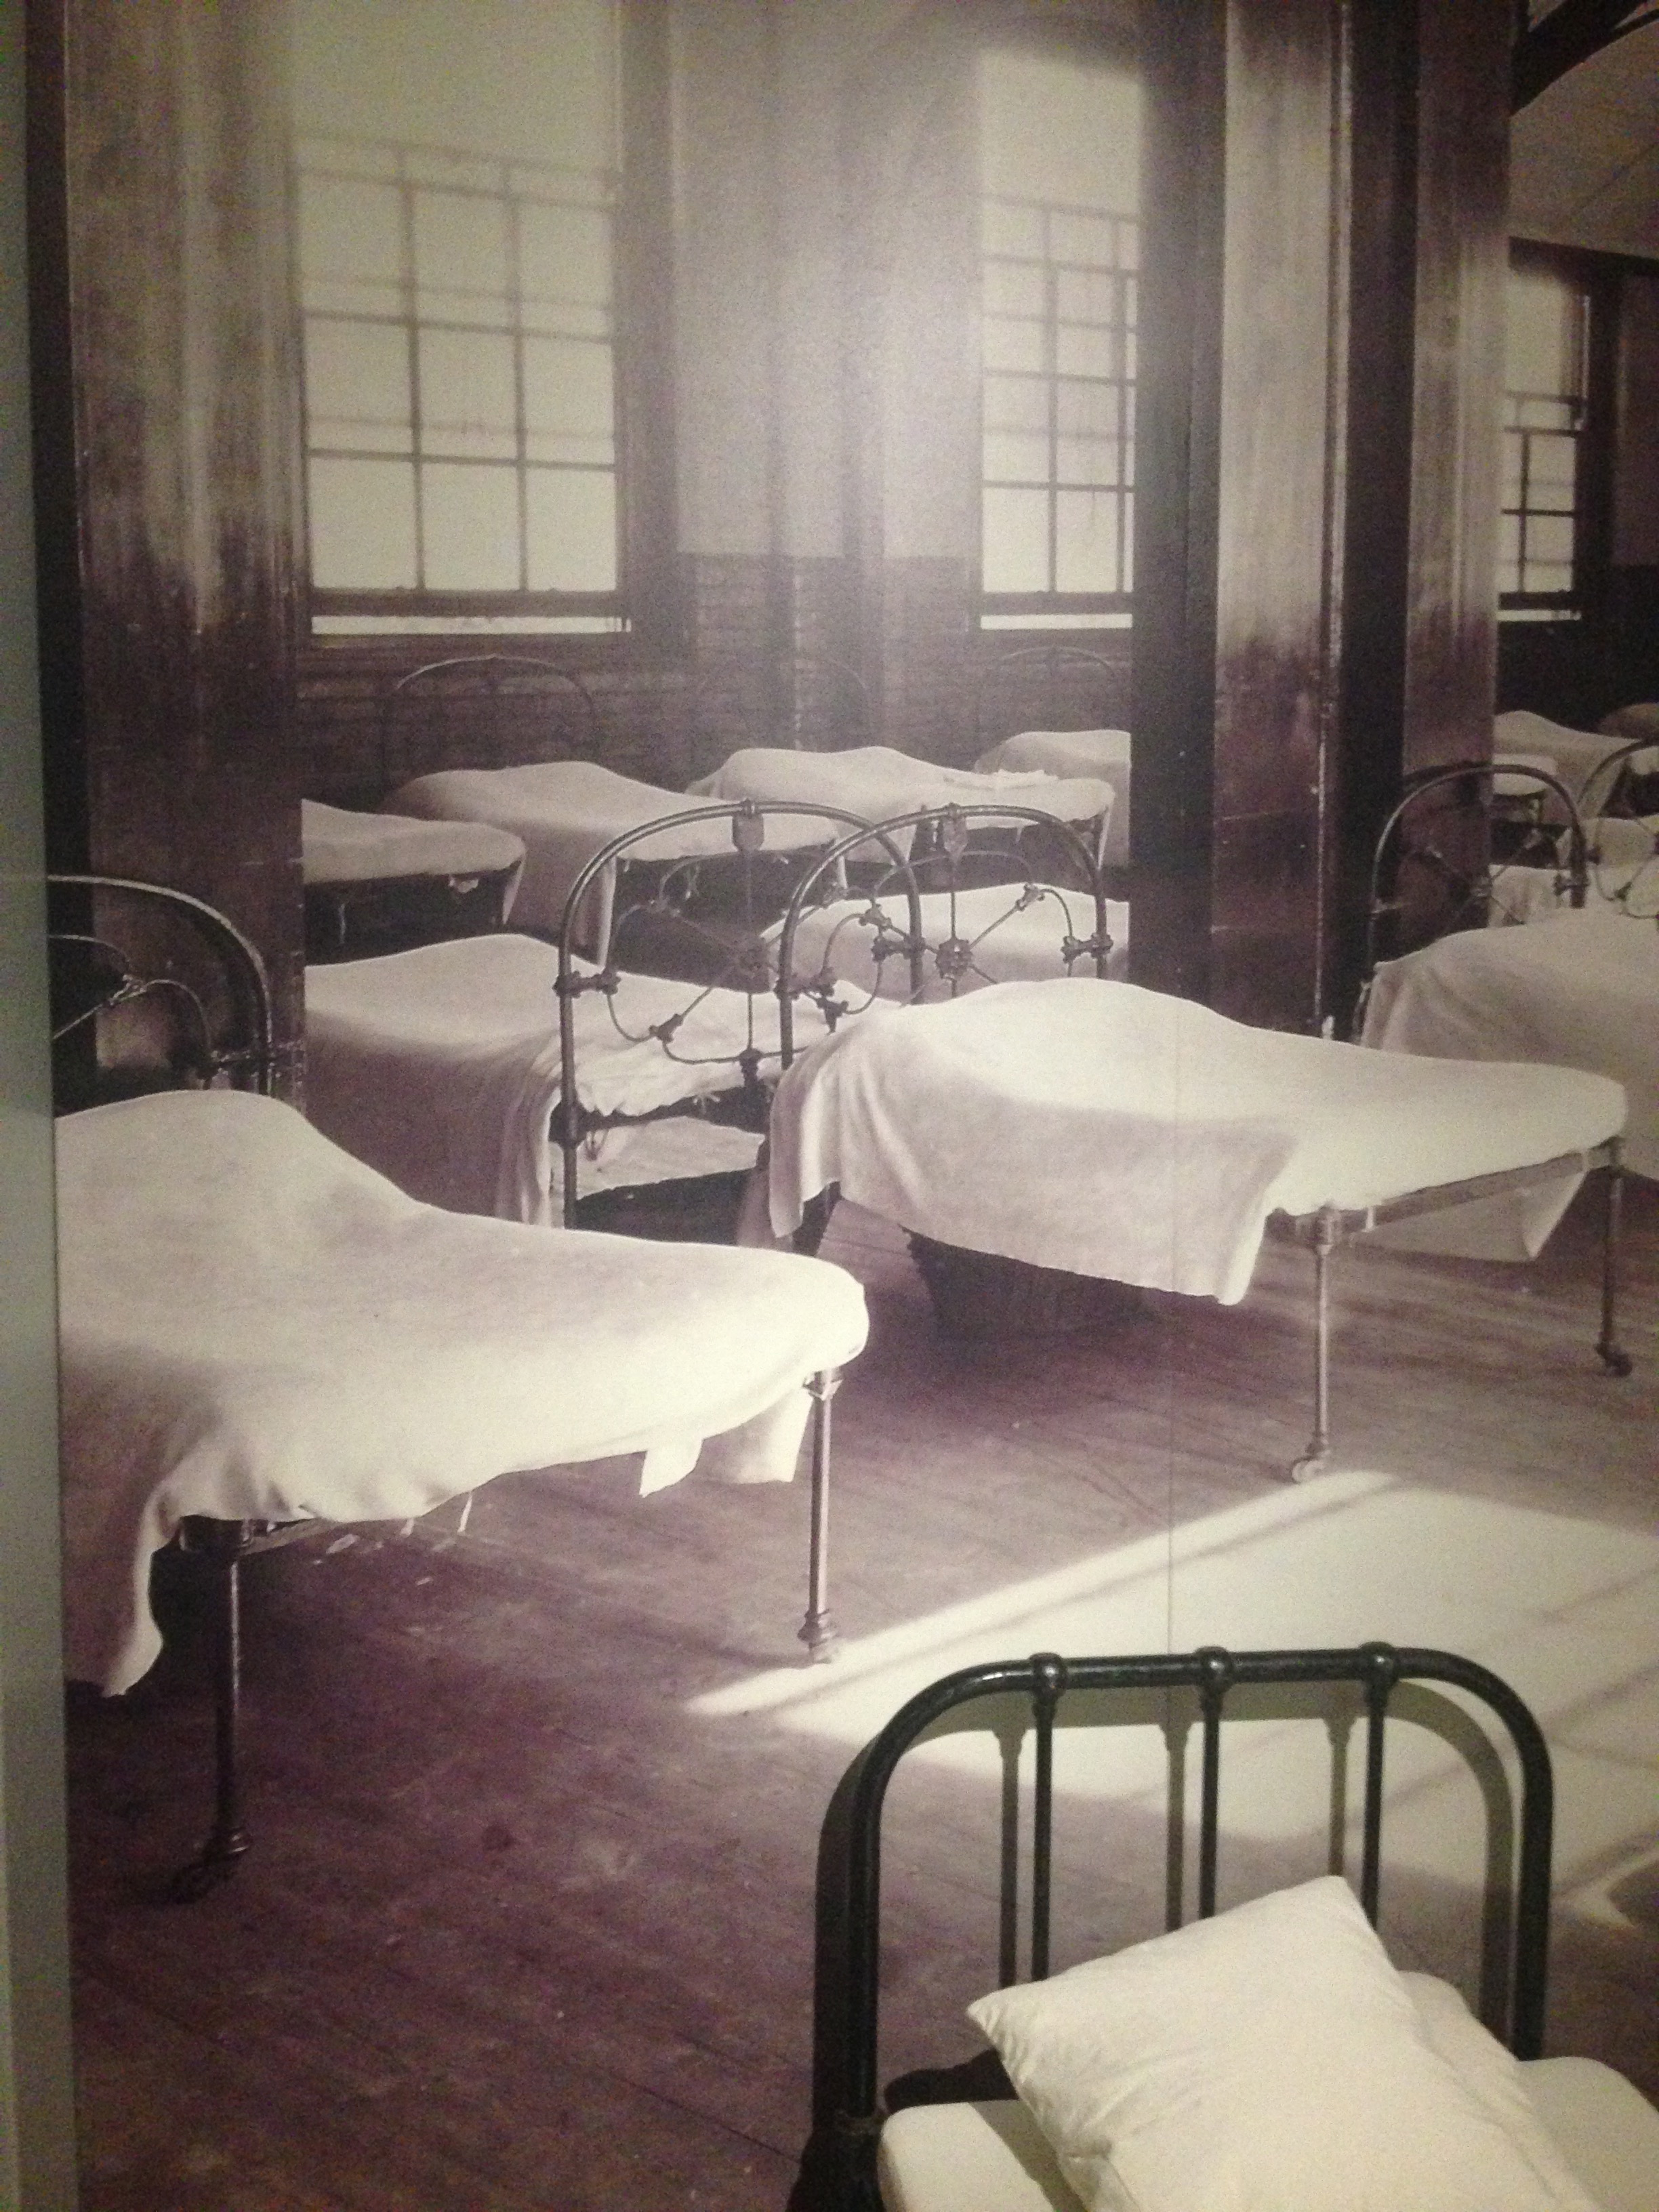 Pictures of the Foundling dorms brought back memories of my Scottish boarding school (my choice to go, and I loved it)